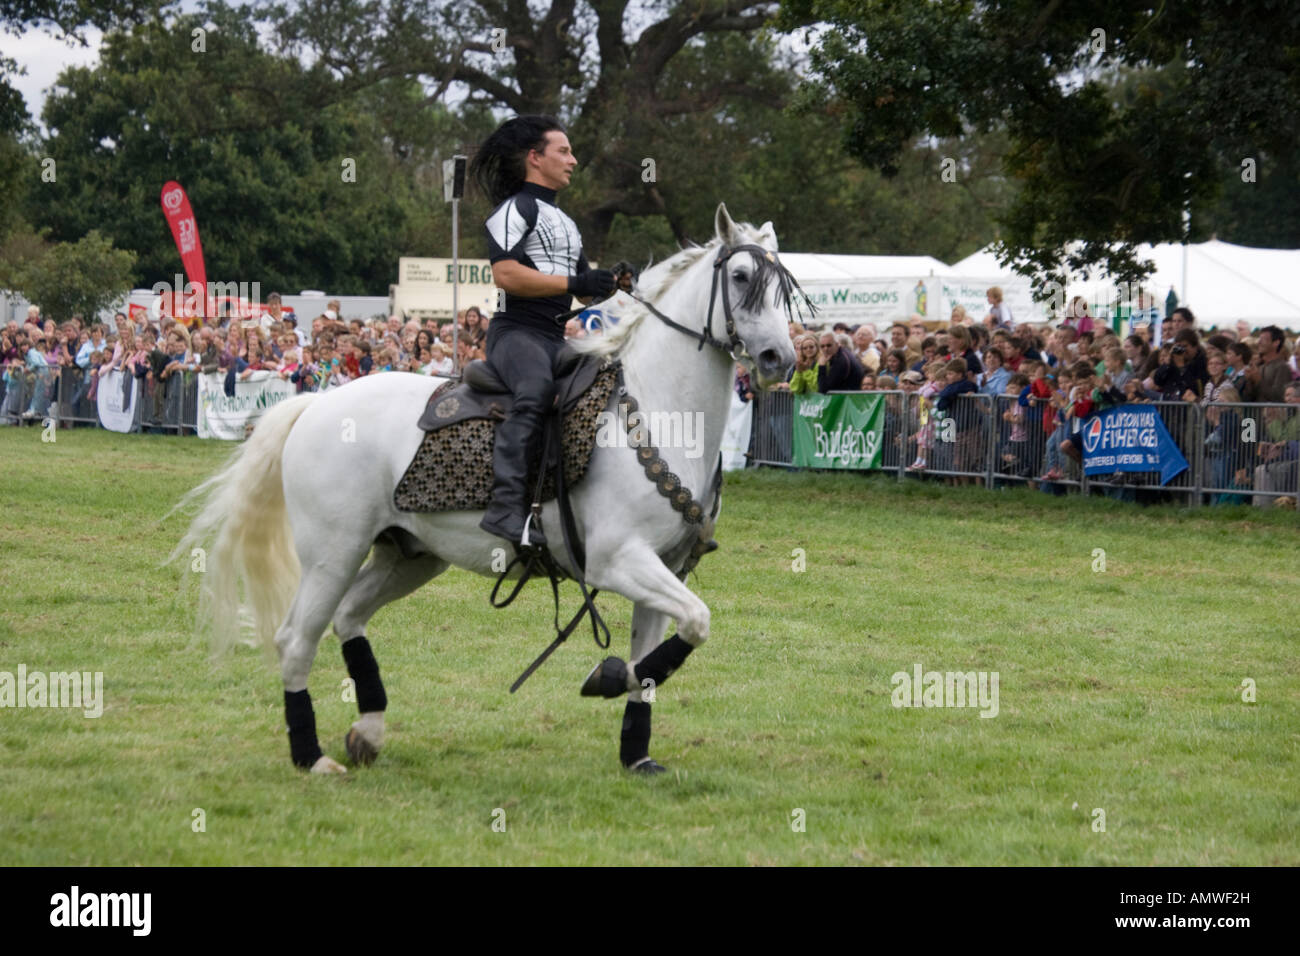 Guido Louis Russian cossack stunt rider Rockin Horse Productions team Moreton Show 2007 Cotswolds UK - Stock Image